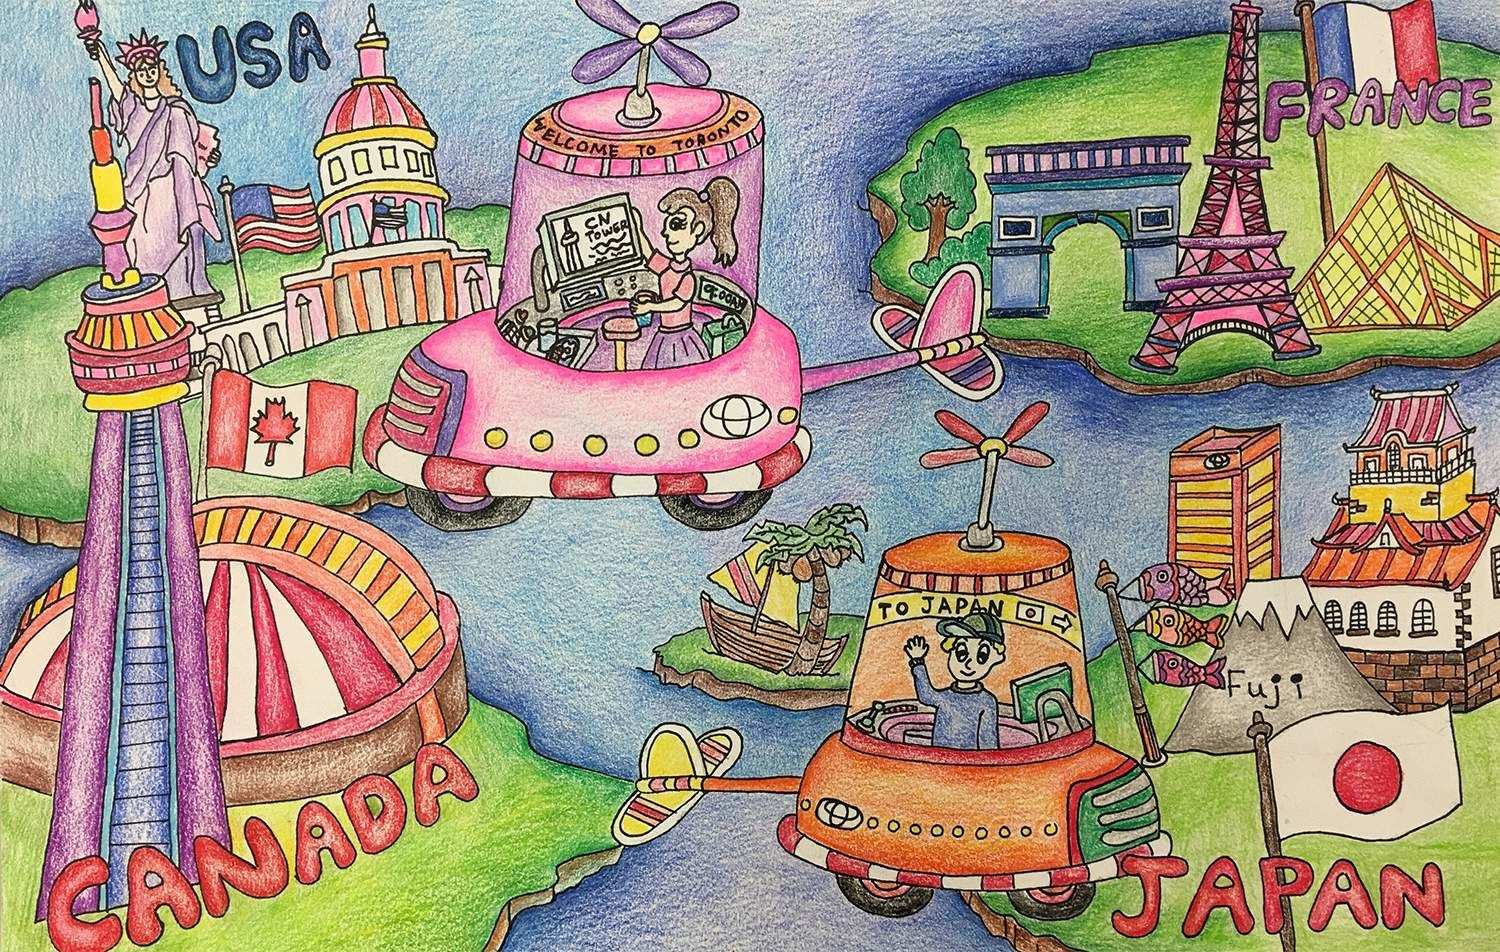 Personal Traveling Car - Liana Dong, age 9